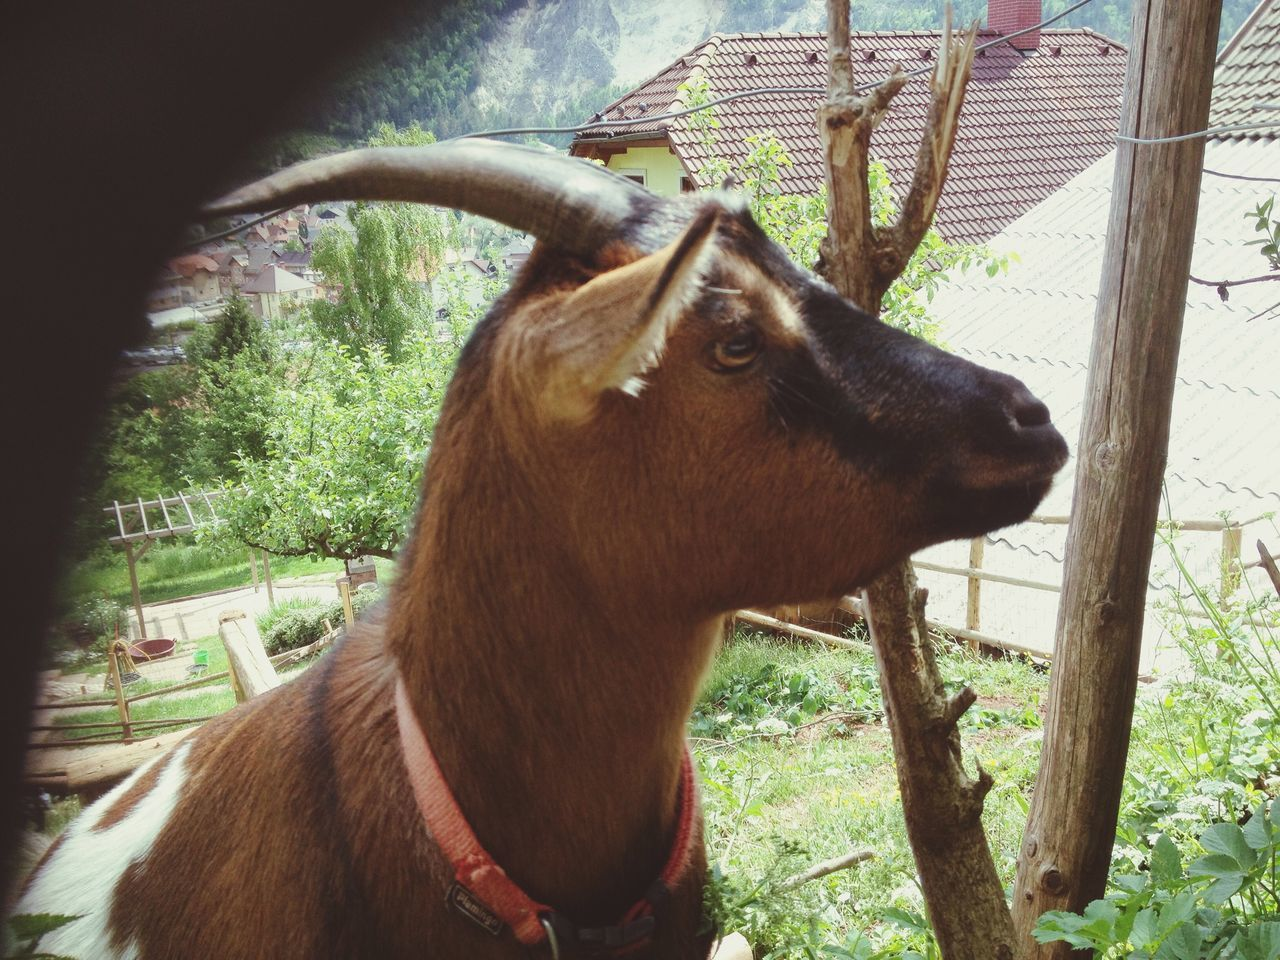 Close-Up Of Goat With Pet Collar In Barn